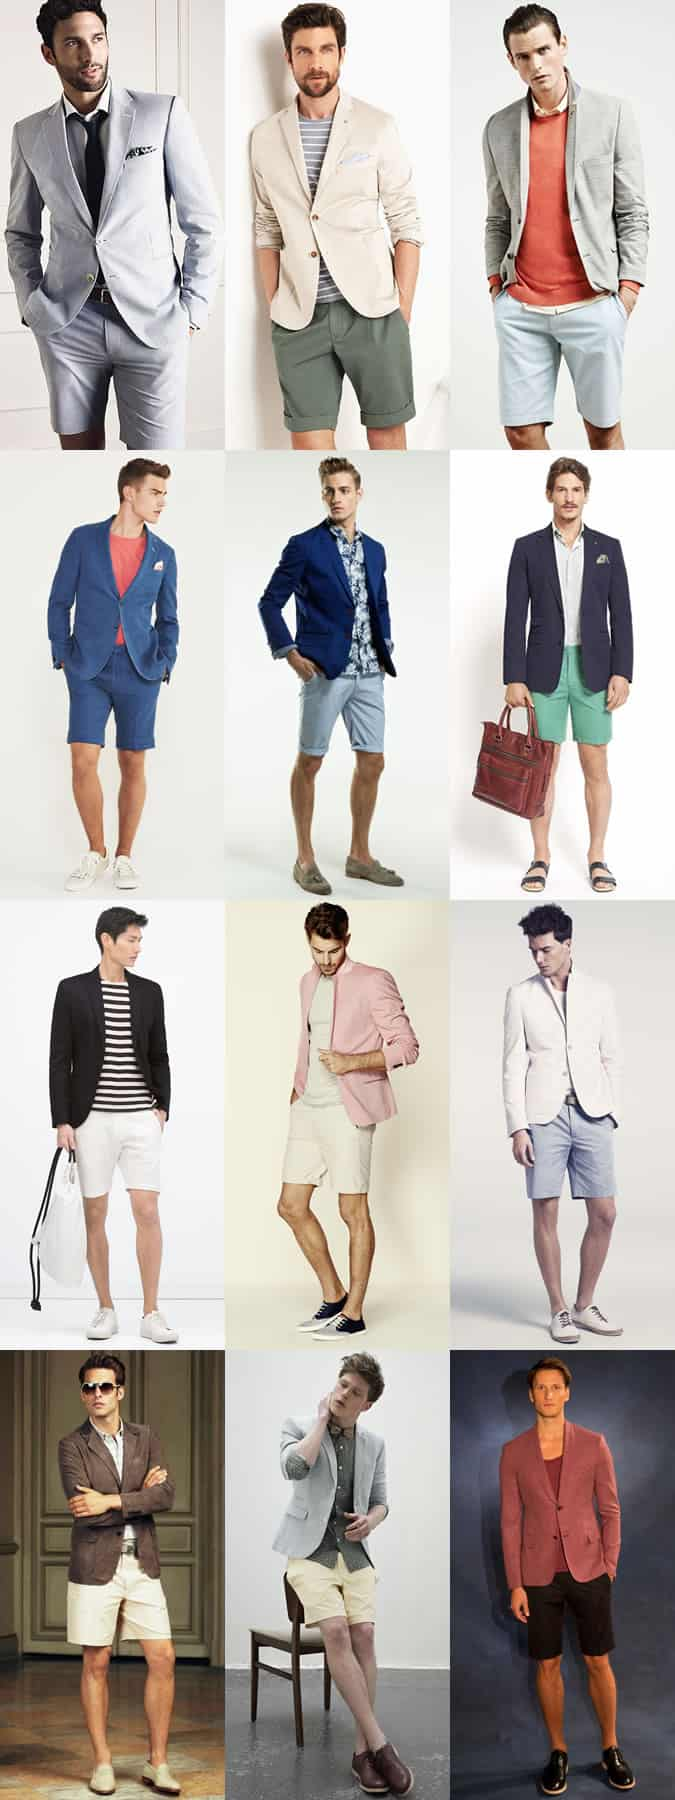 Men's shorts with blazers and short suits outfit inspiration lookbook